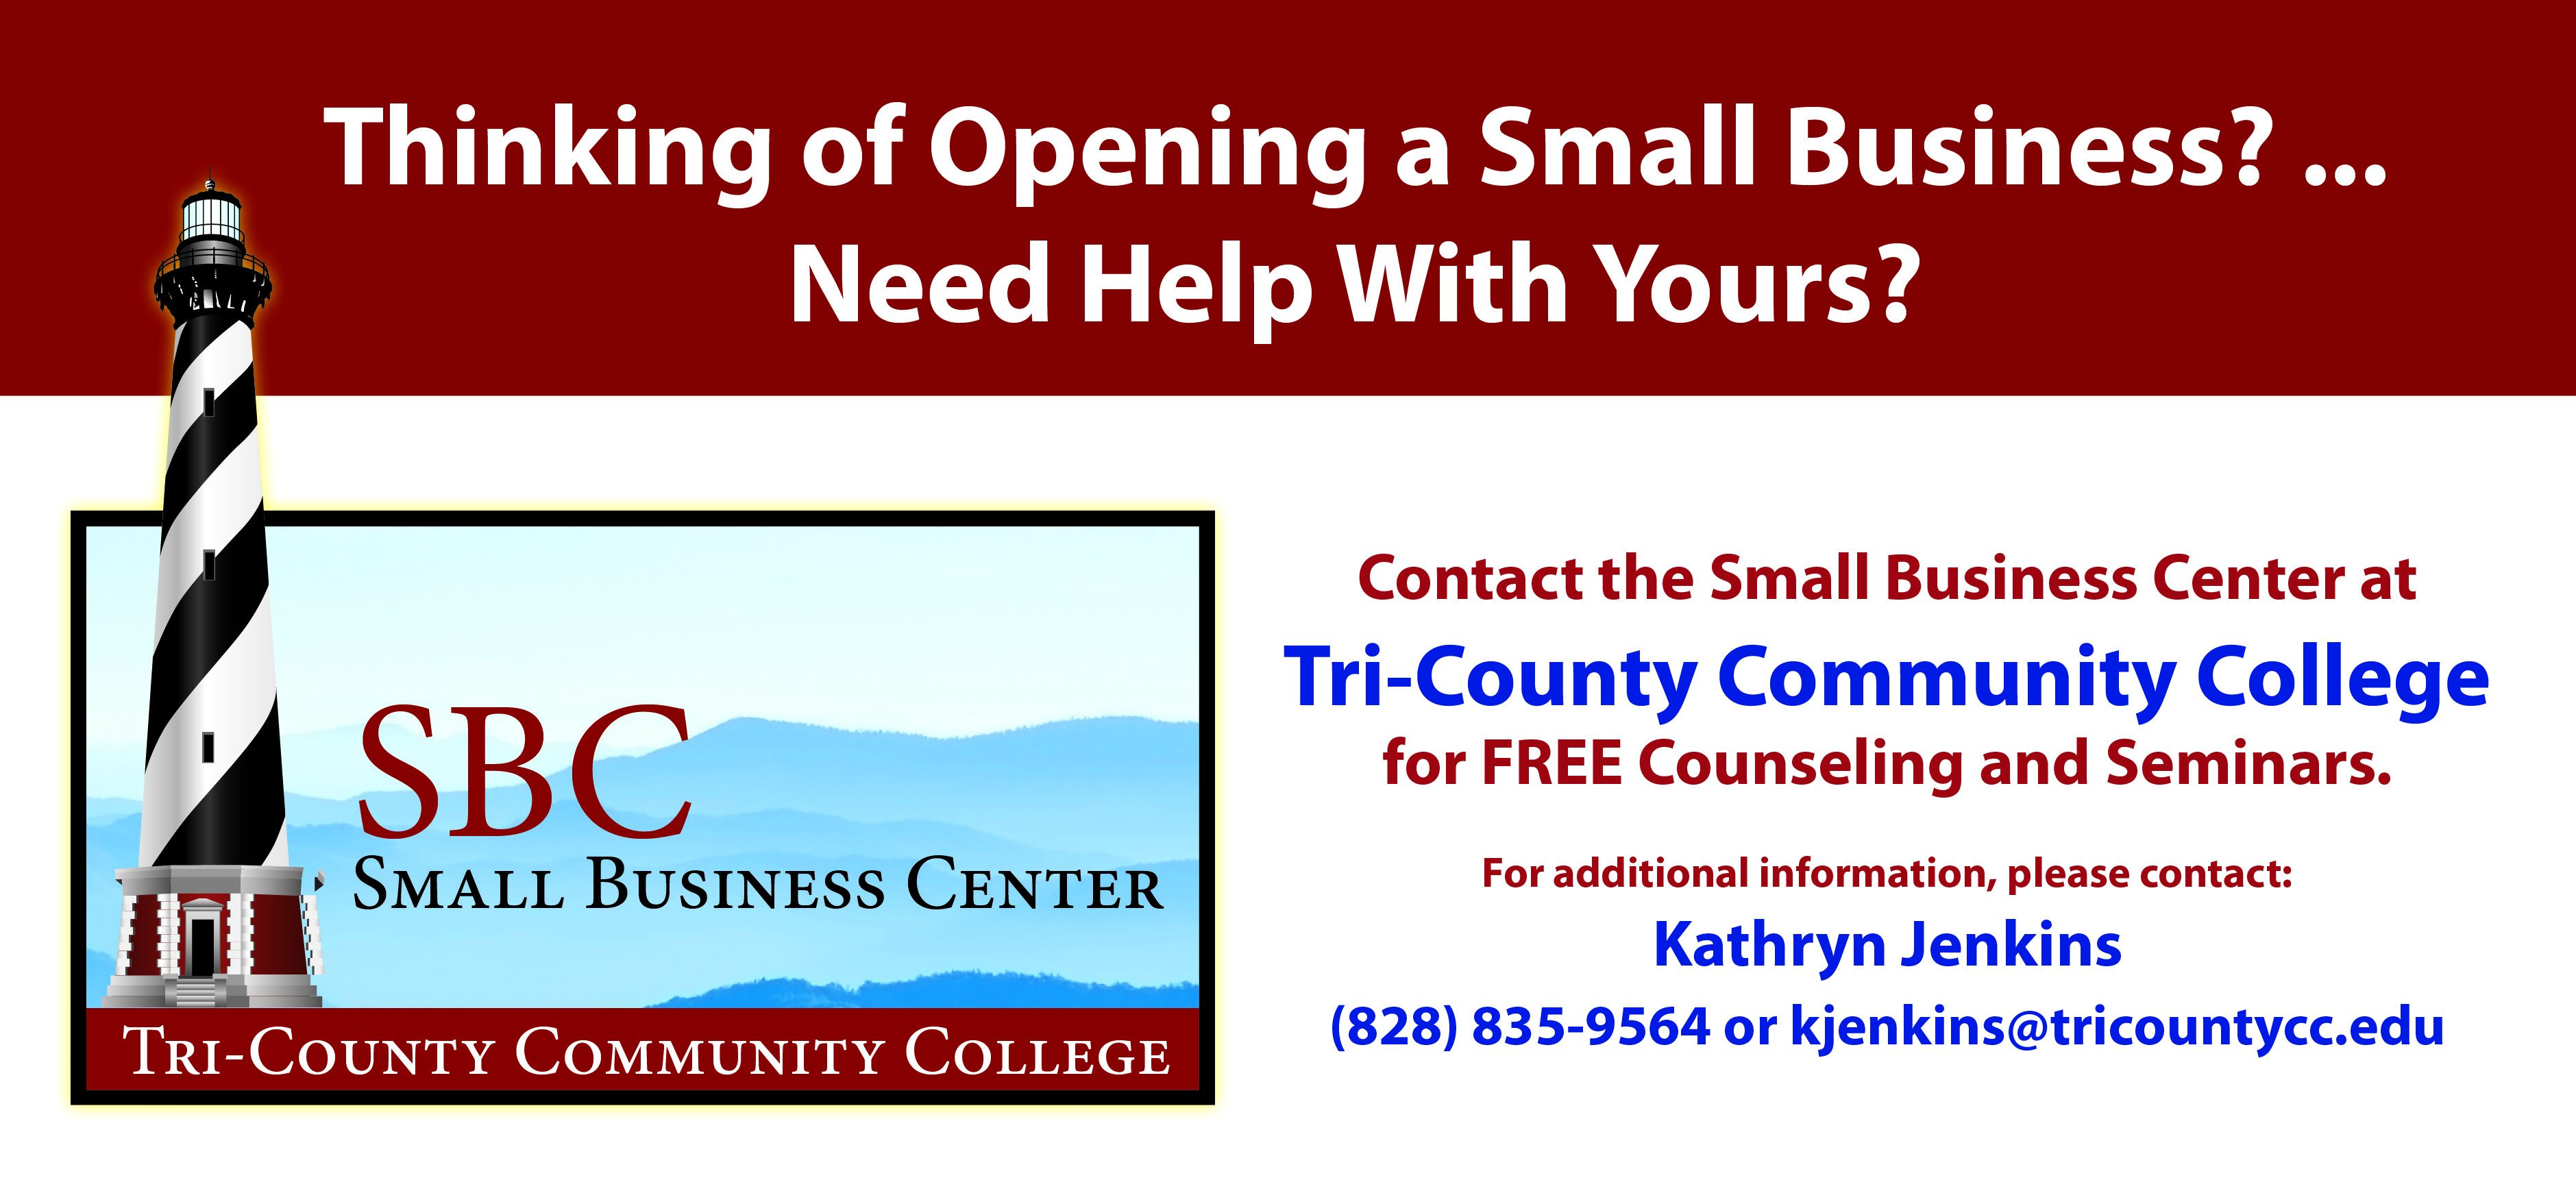 Small Business Center TCCC Murphy NC Tri-County Seminar Free Business